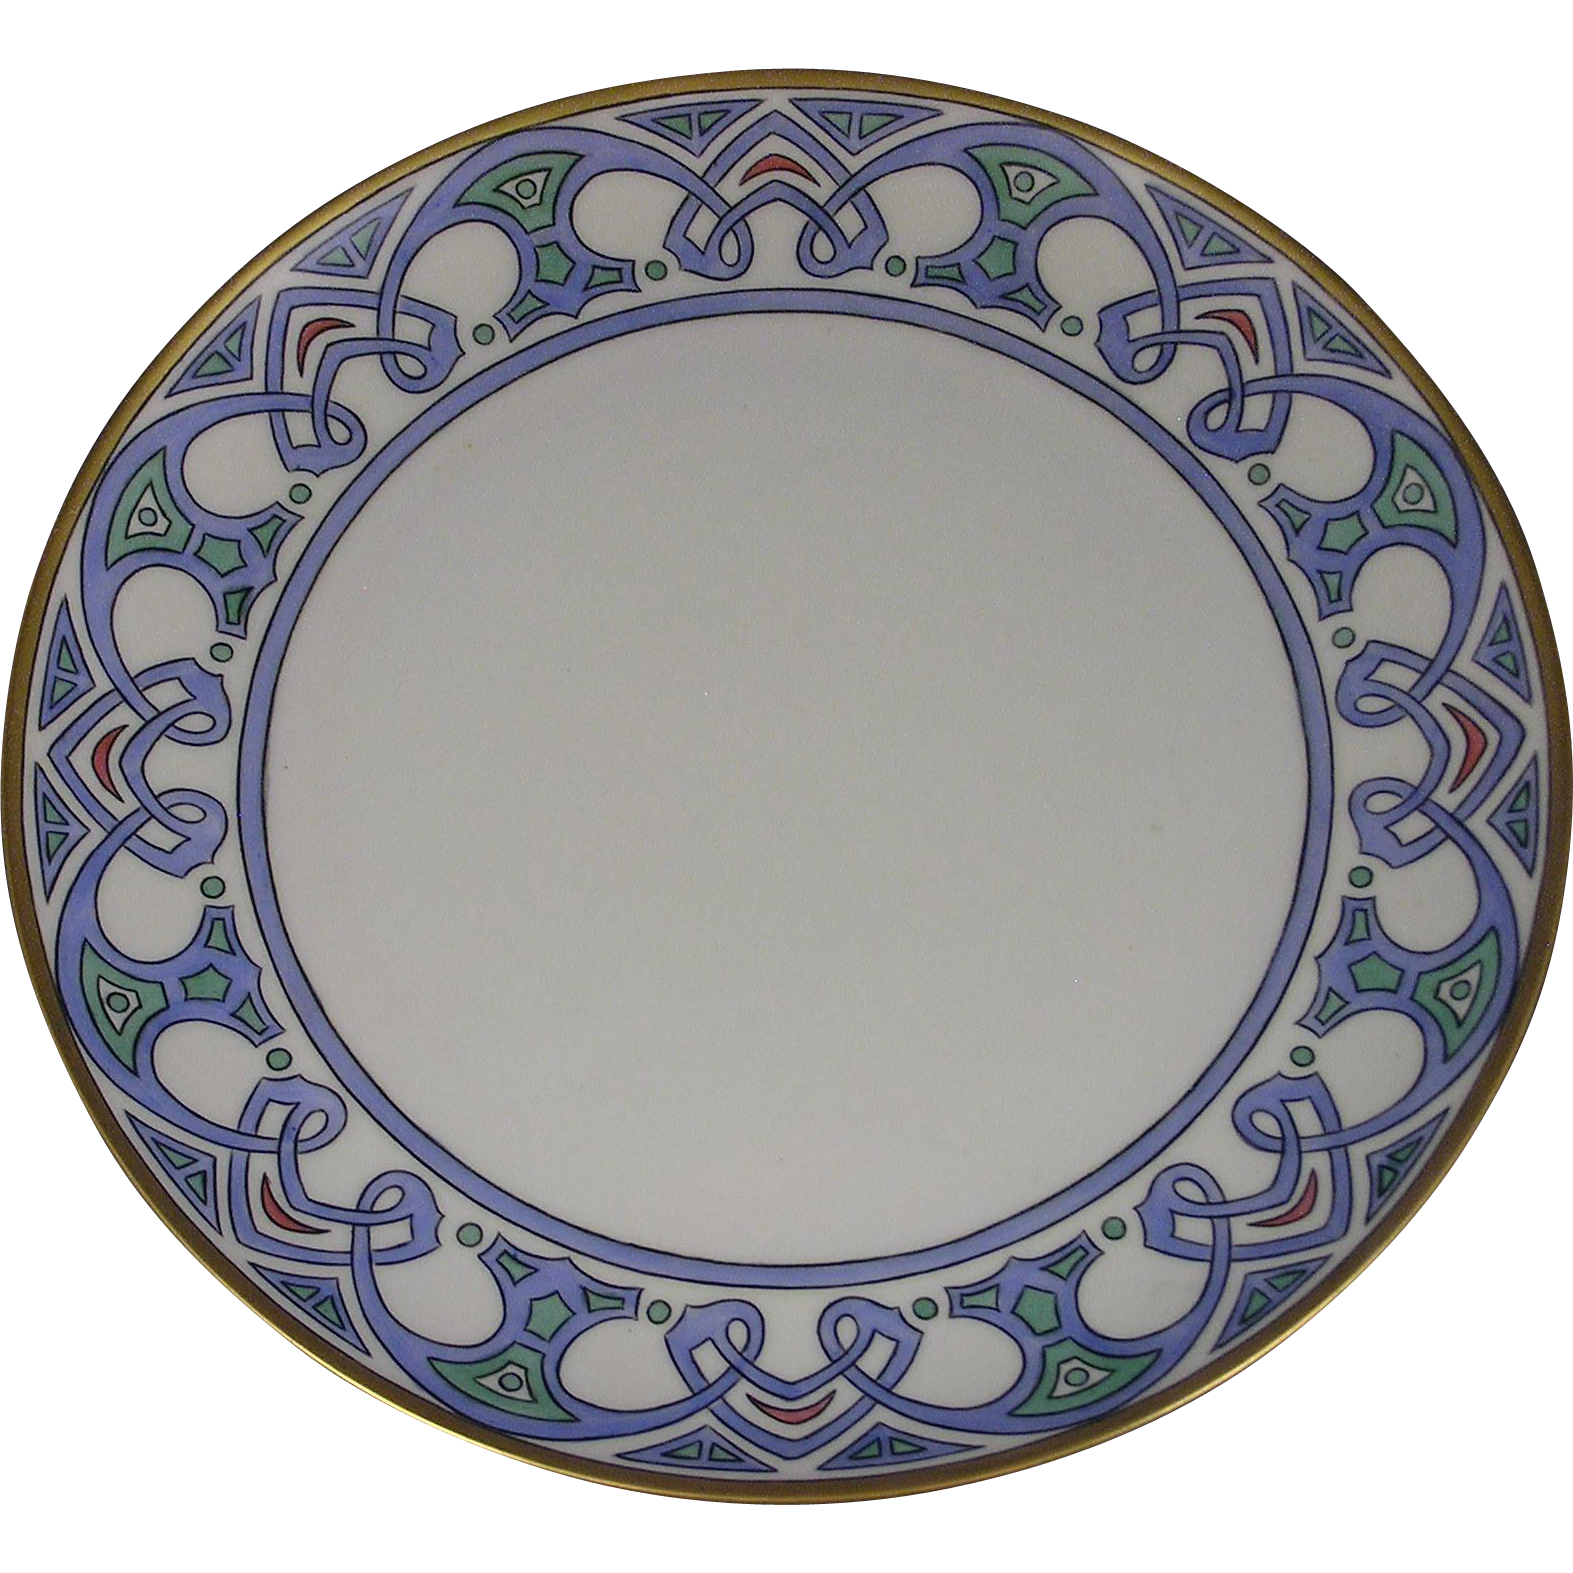 Haviland Limoges Arts & Crafts Geometric Design Plate (c.1909-1931) - Keramic Studio Design